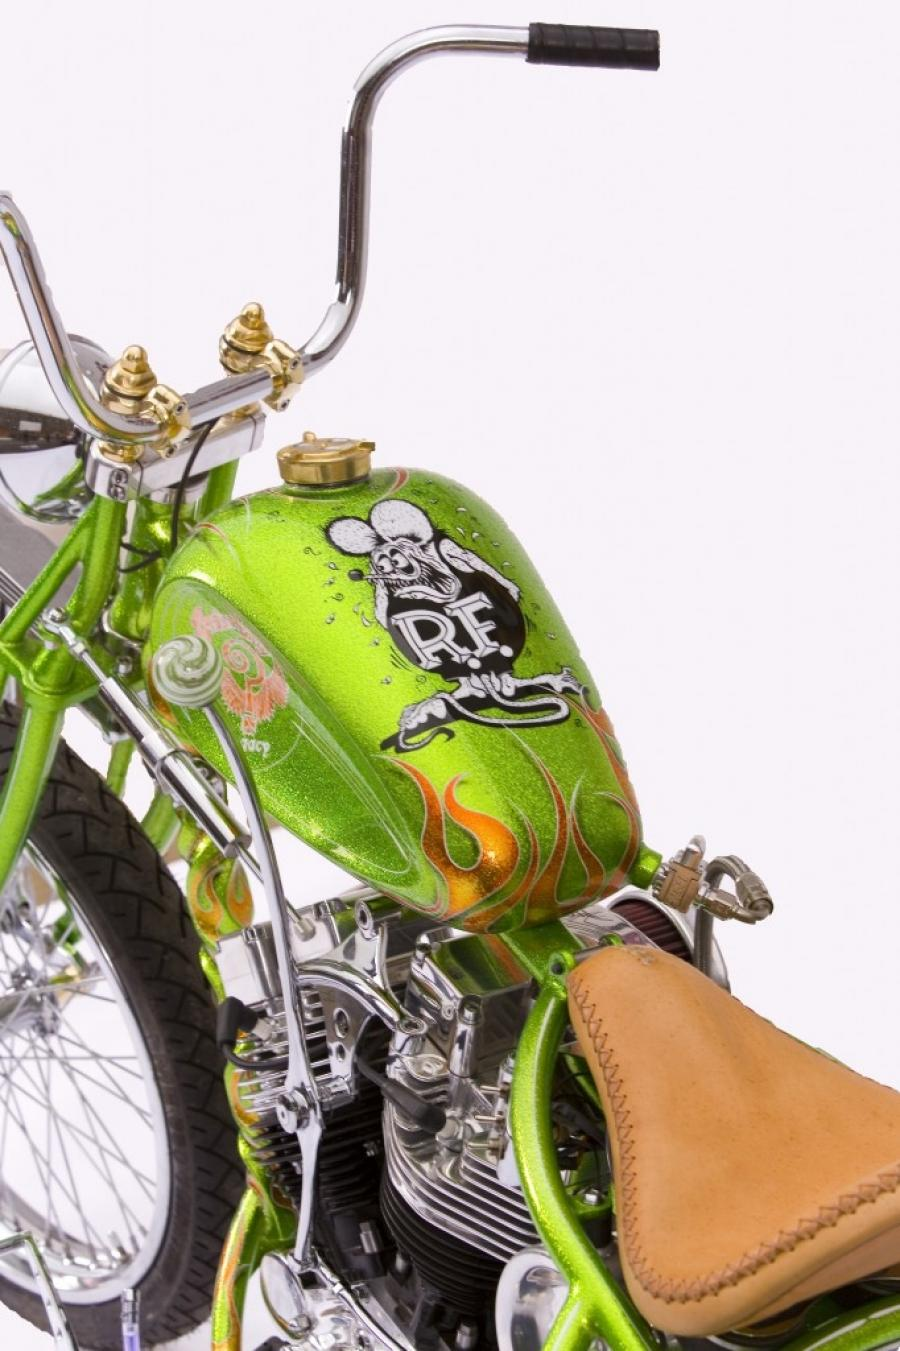 wild thing built by indian larry legacy of u s a